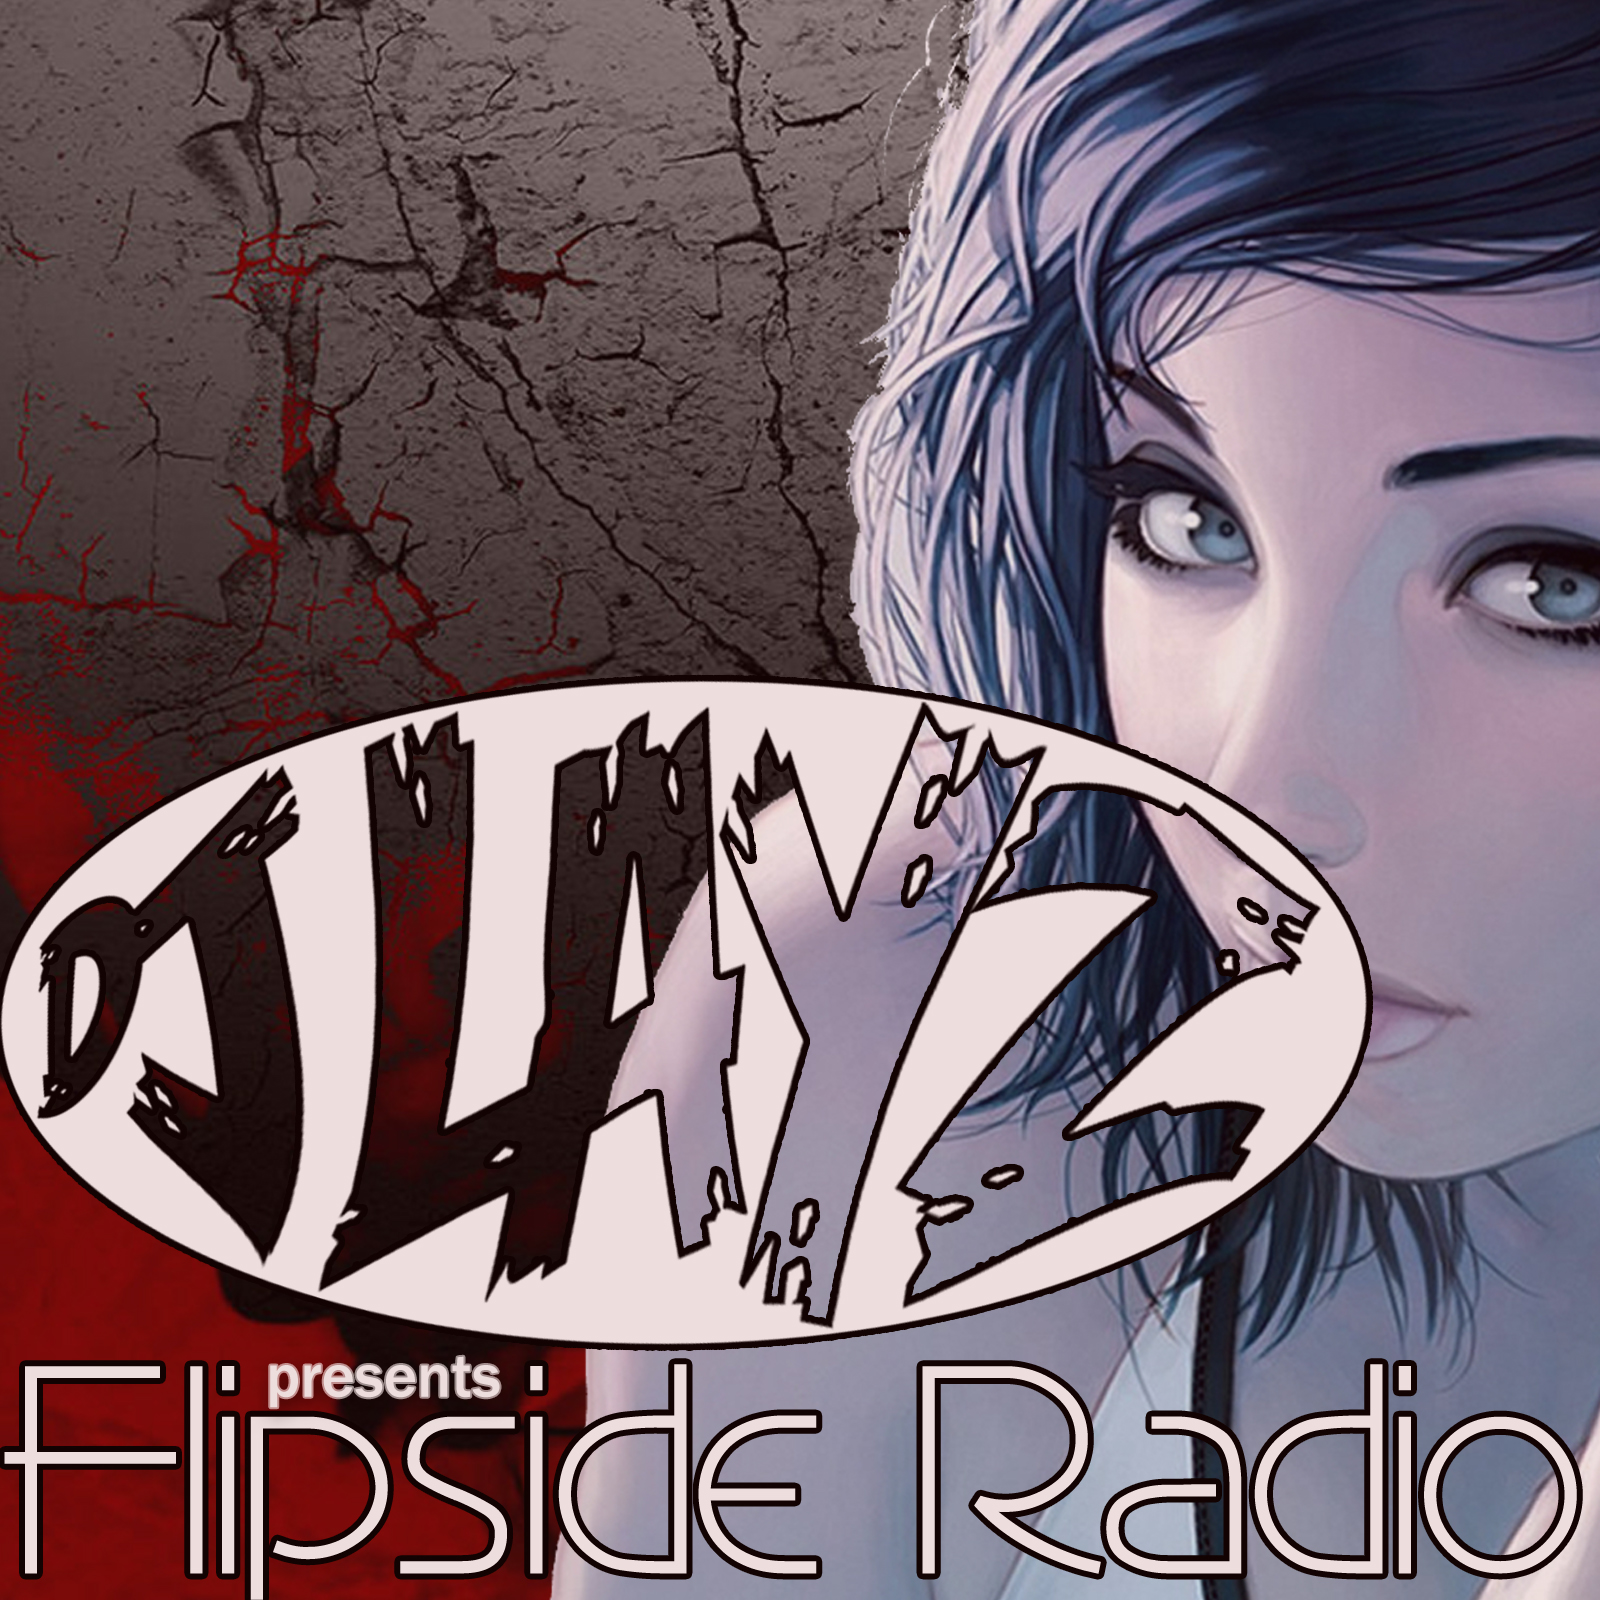 DJ Lay Z presents Flipside Radio